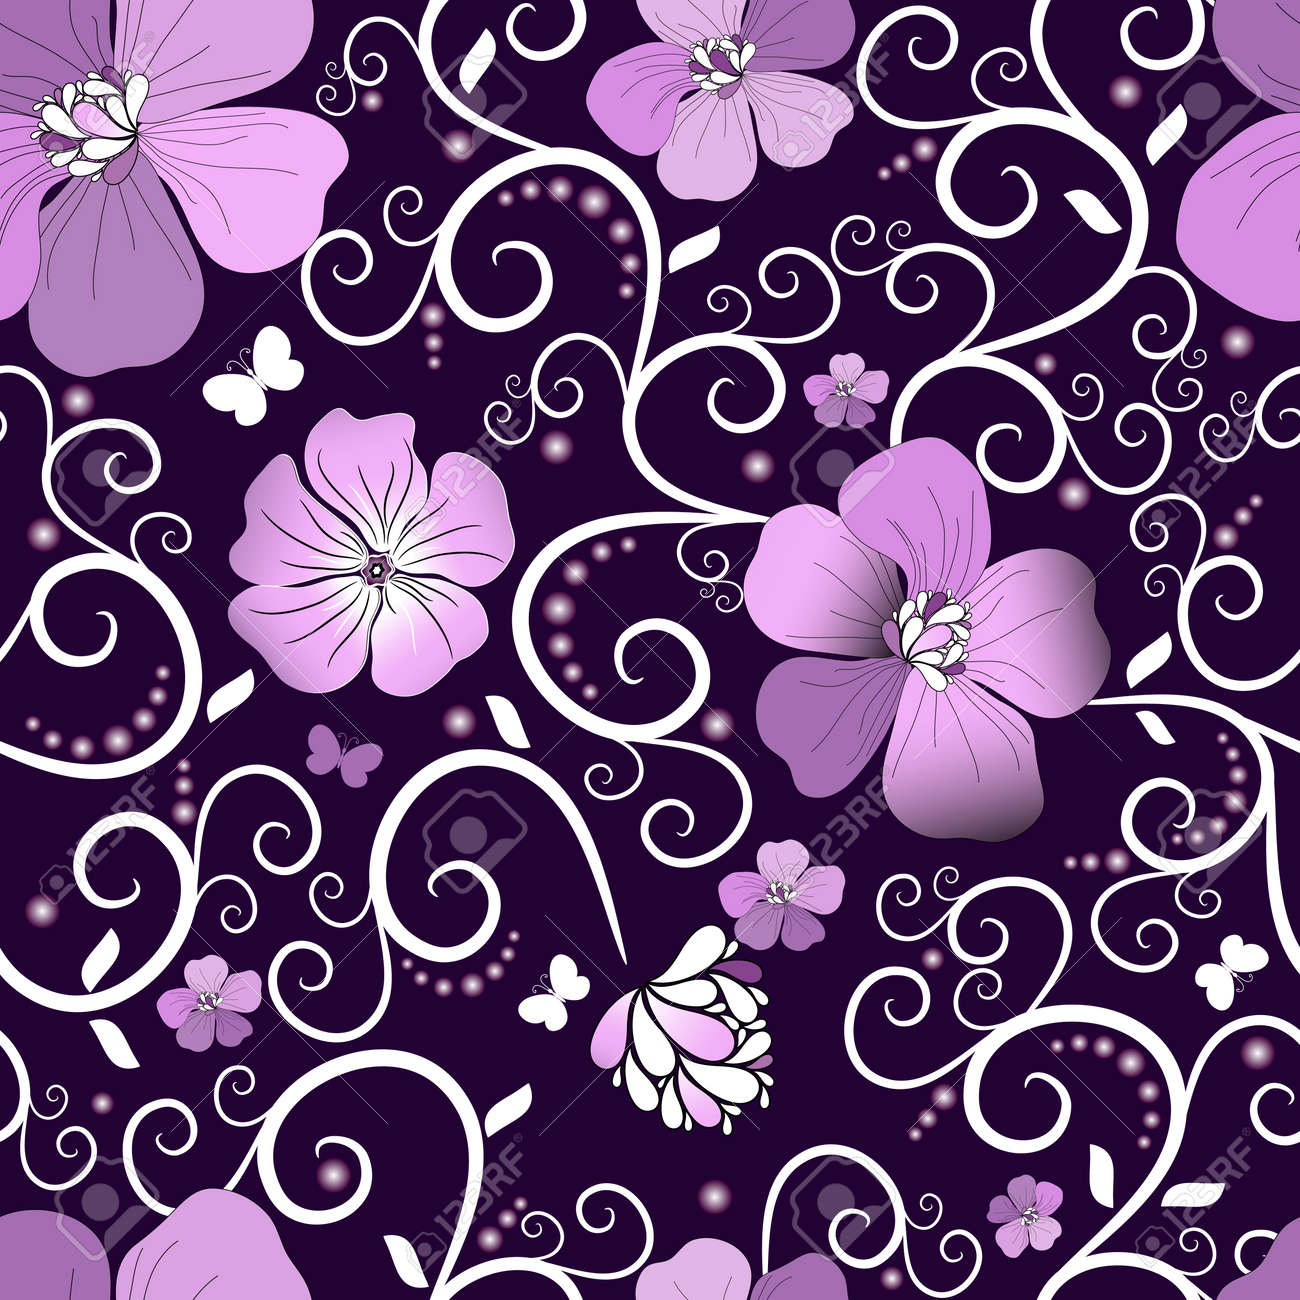 Pink butterfly vector background hd wallpapers pink butterfly vector - Dark Violet Seamless Floral Pattern With Pink Flowers And Butterflies Vector Stock Vector